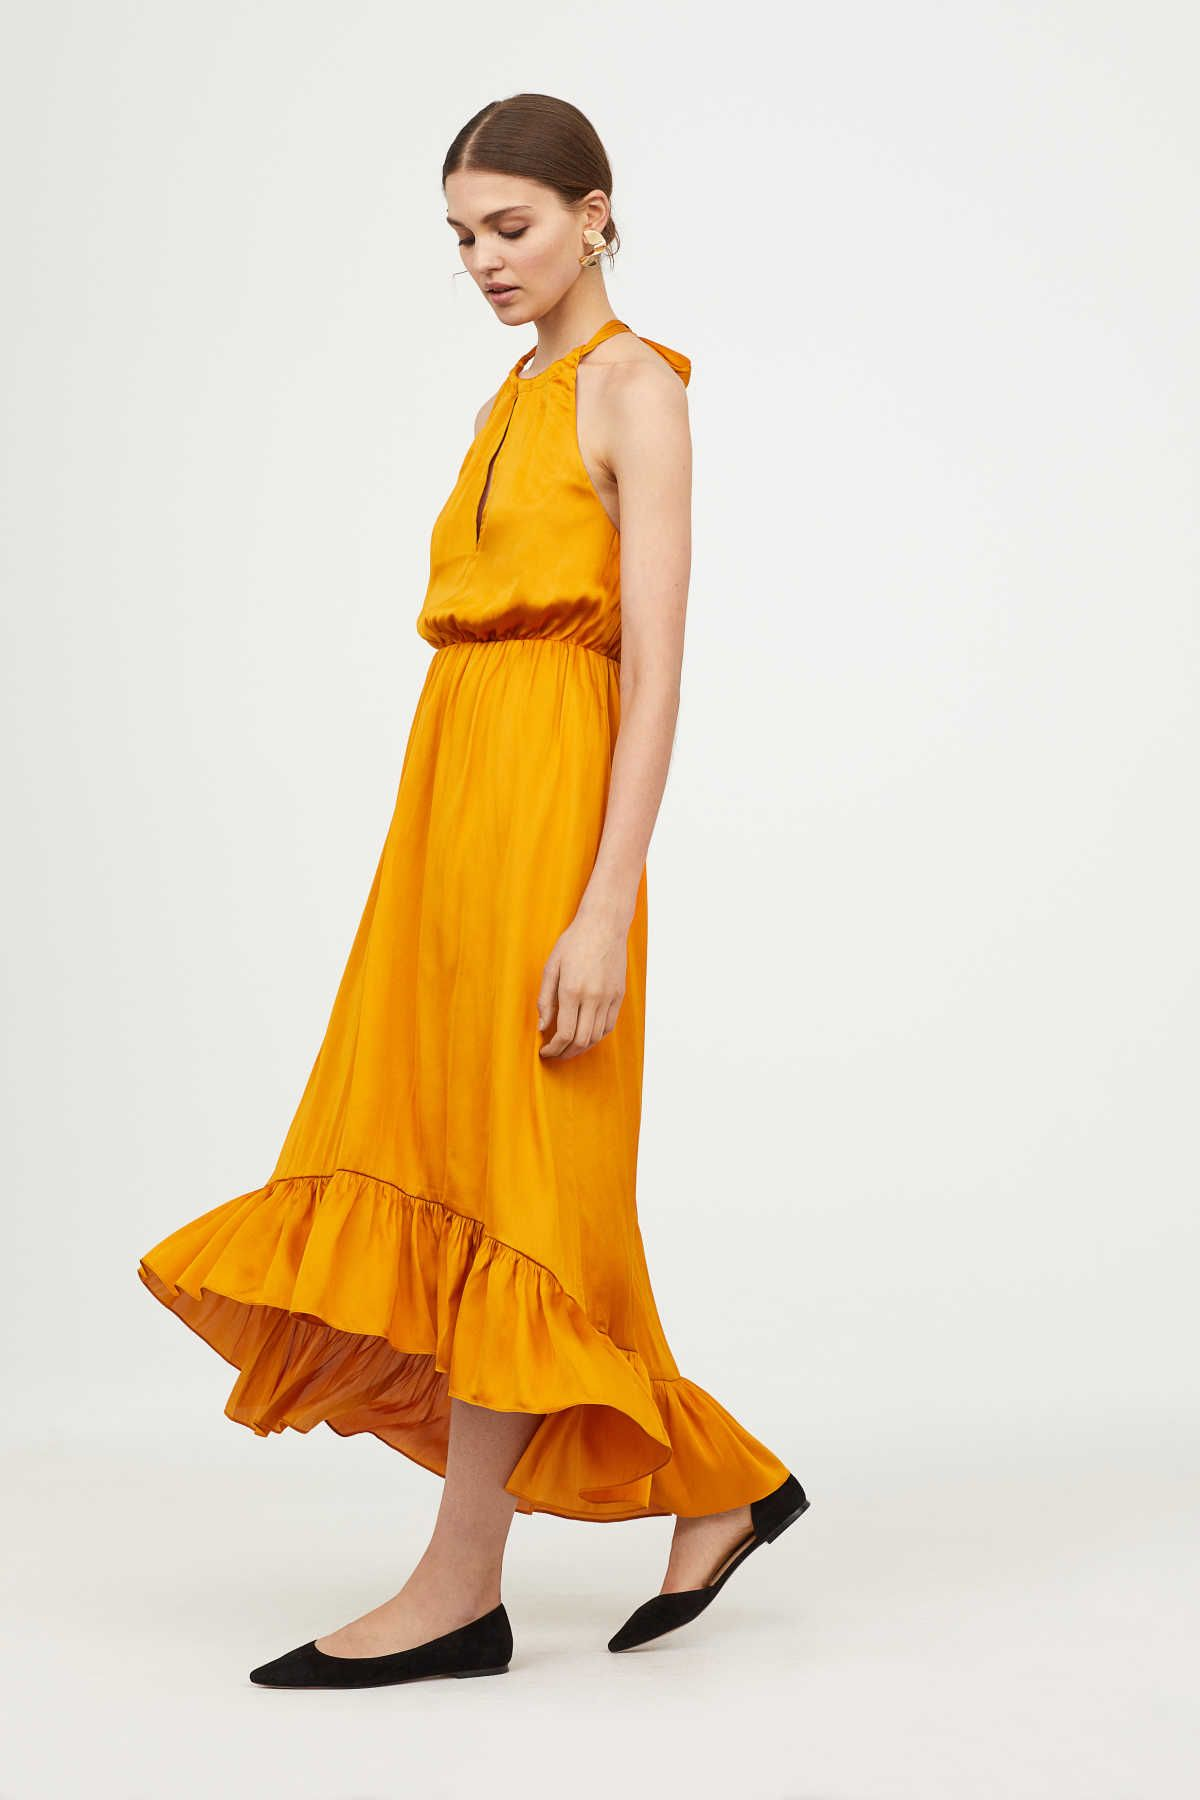 6bbddbaad7 Amber-colored. Halterneck dress in satin with a sheen. Tie at back of neck